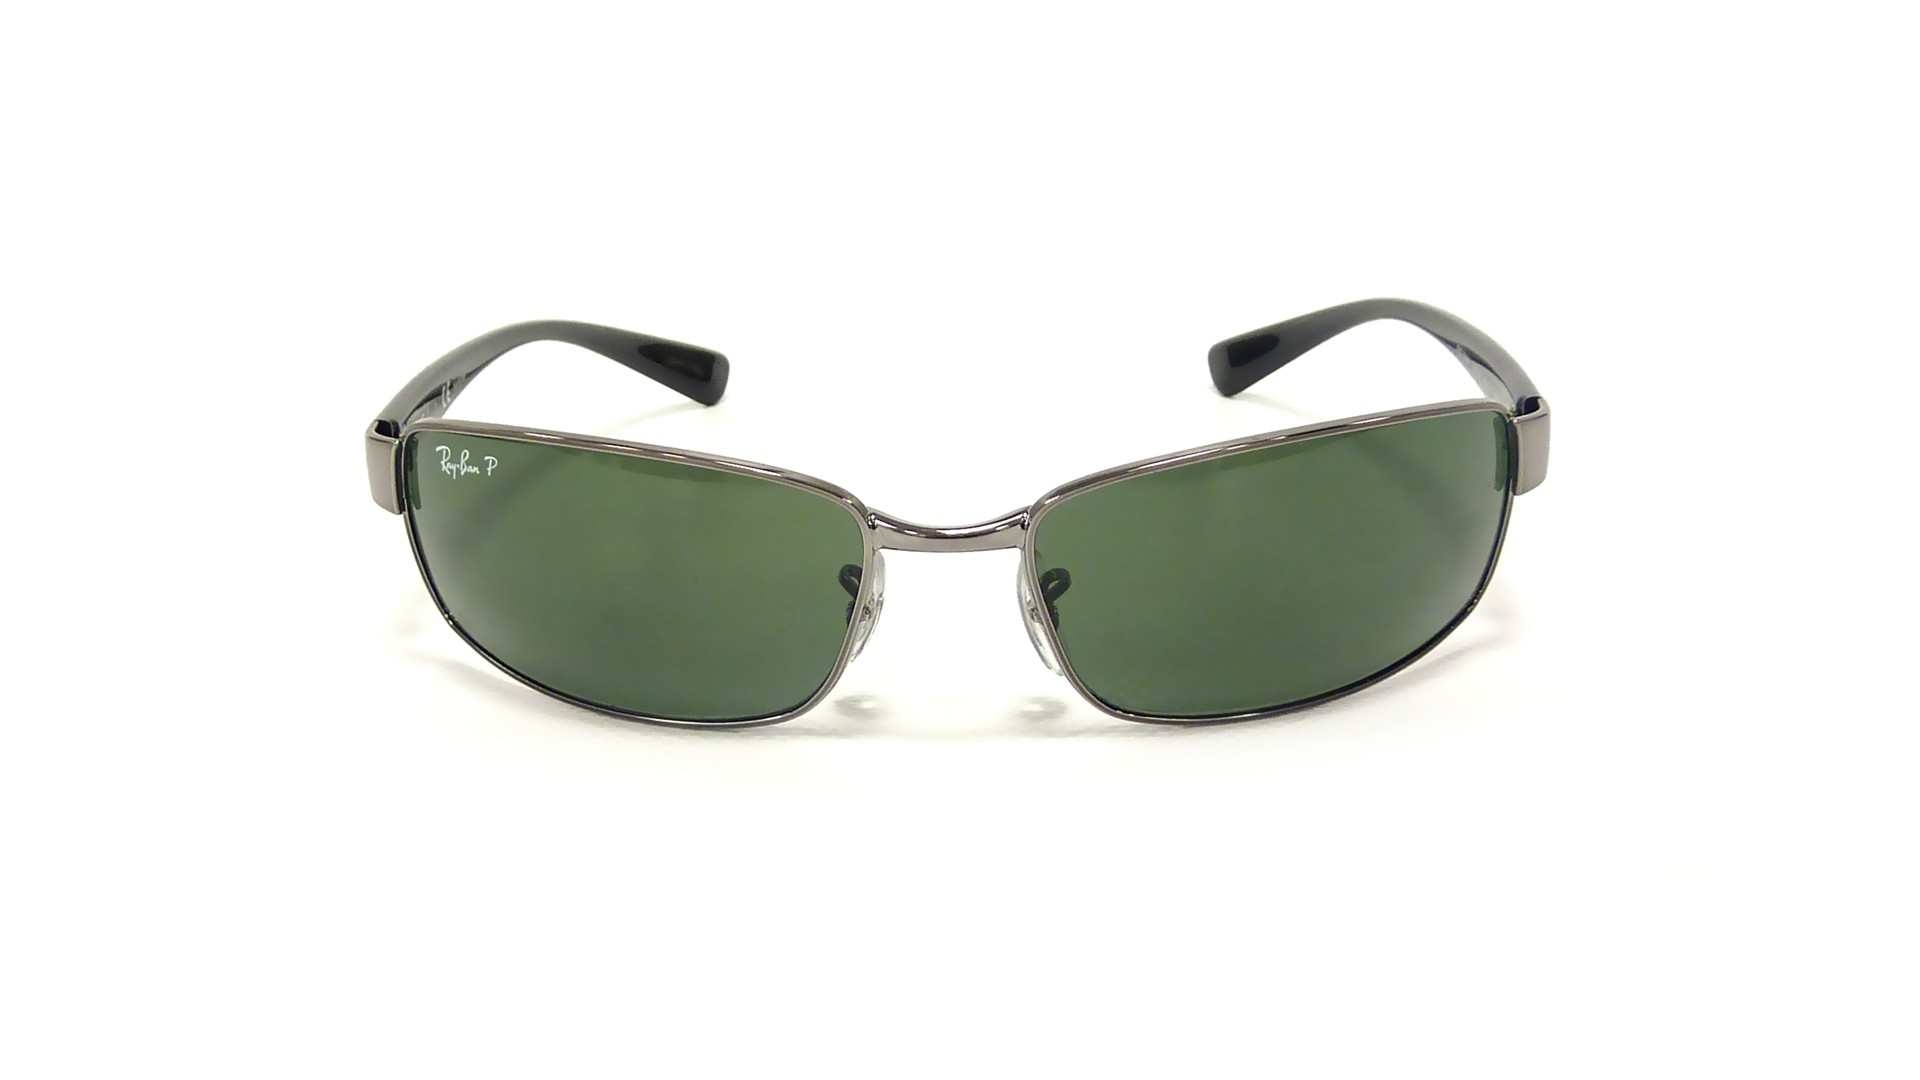 a82b98eb90 Ray Ban Sunglasses Rb 3364 Polarized Lenses « Heritage Malta